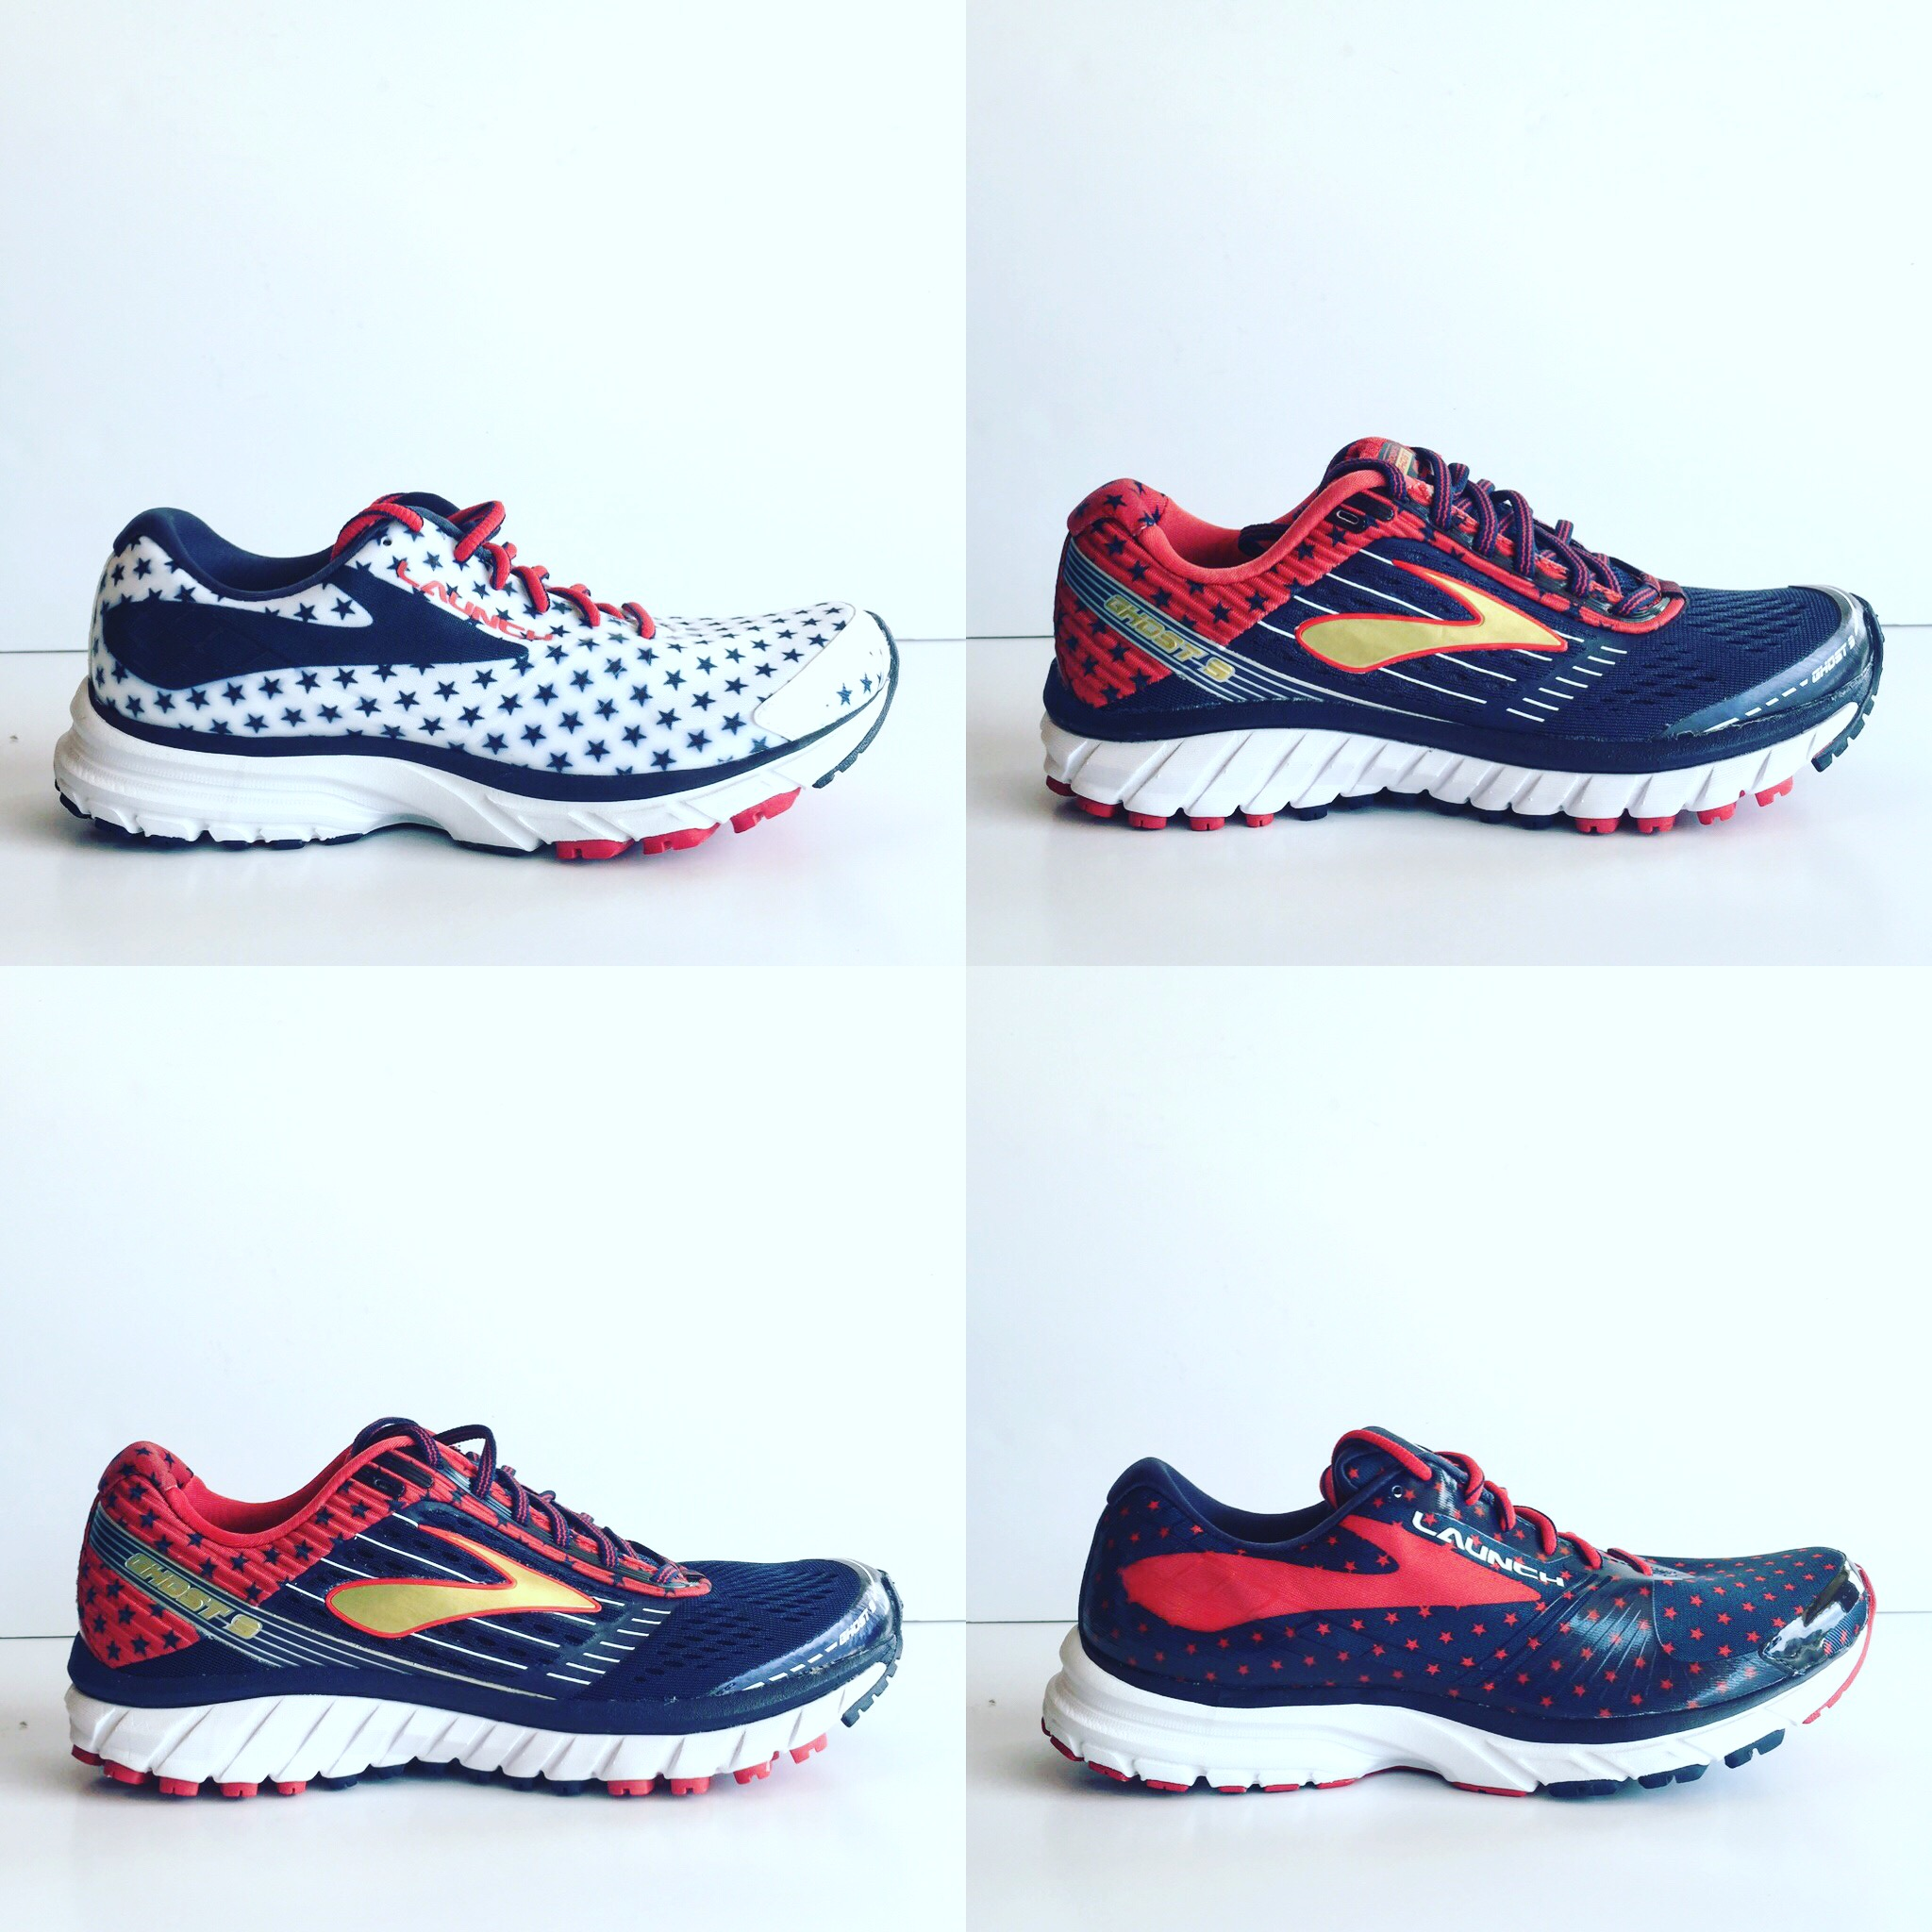 02b52fd37ba Just in Friday, July 1st 2016: Brooks Victory Pack Ghost 9 and Launch 3.  Available at Fleet Feet Kingspointe only July 1st-3rd and at Fleet Feet  Blue Dome ...